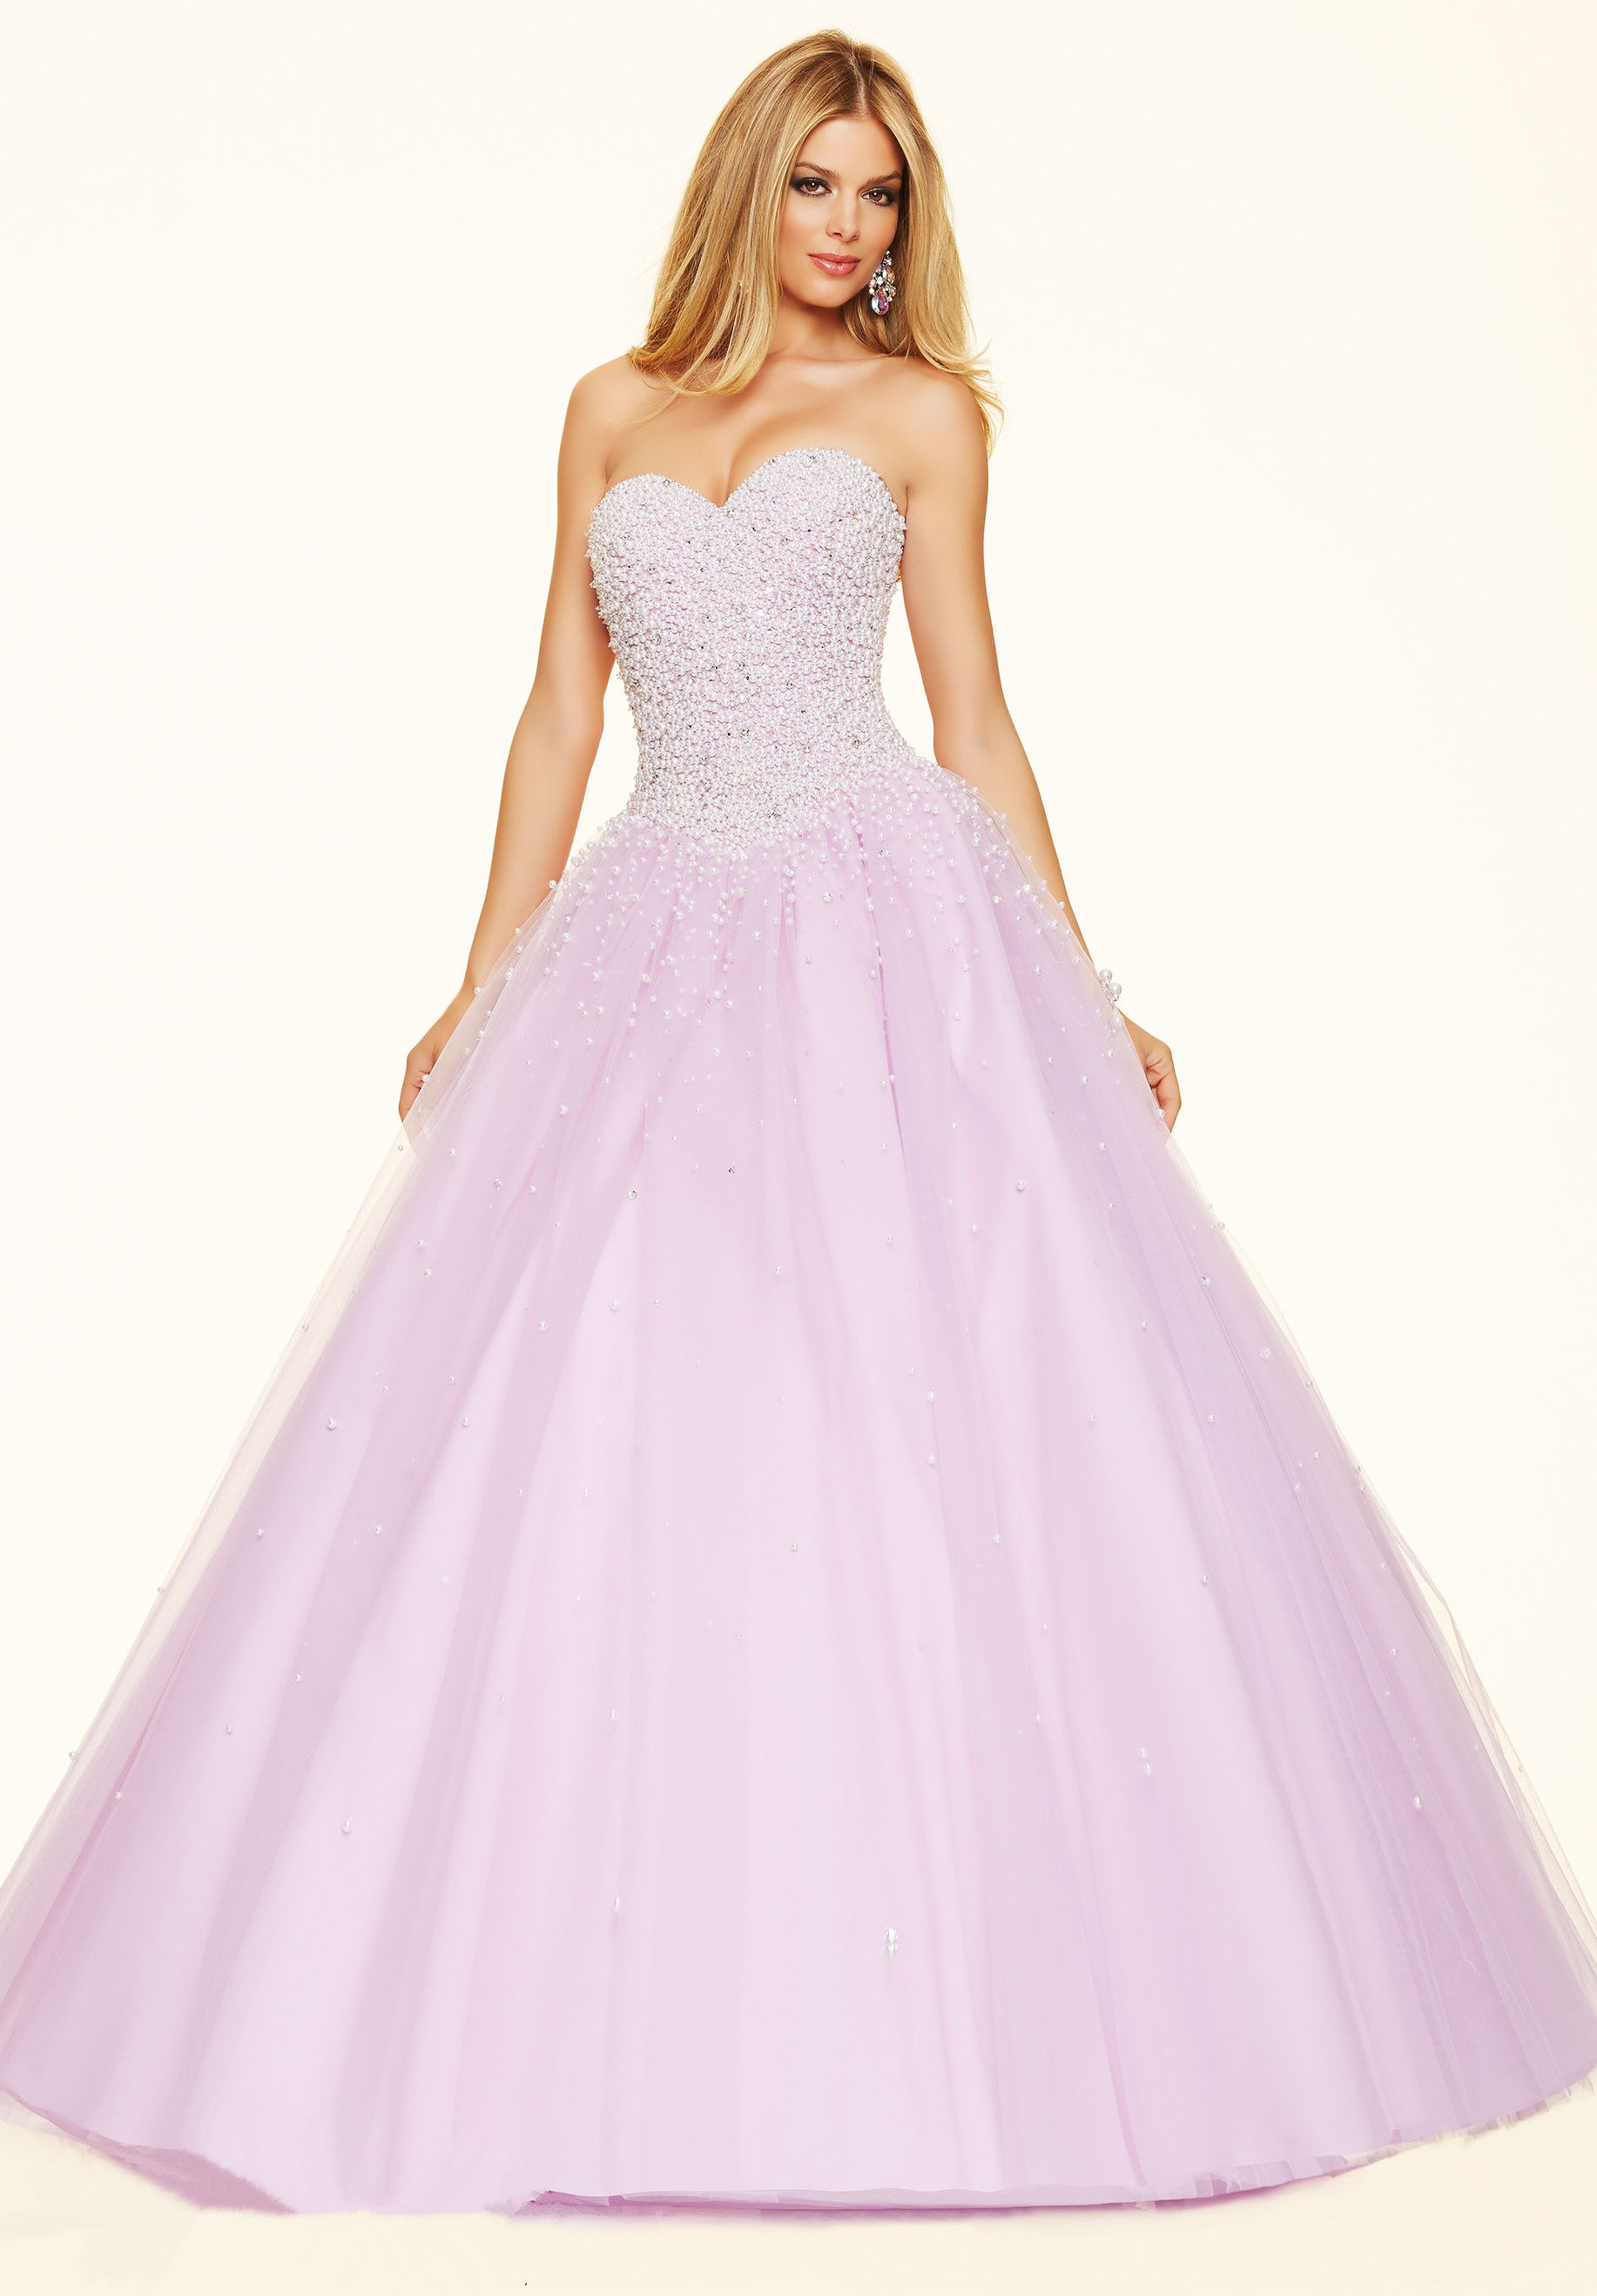 Lilac Sweetheart Tulle Ball Gown Prom Dress Cpa0184 | prom dresses ...